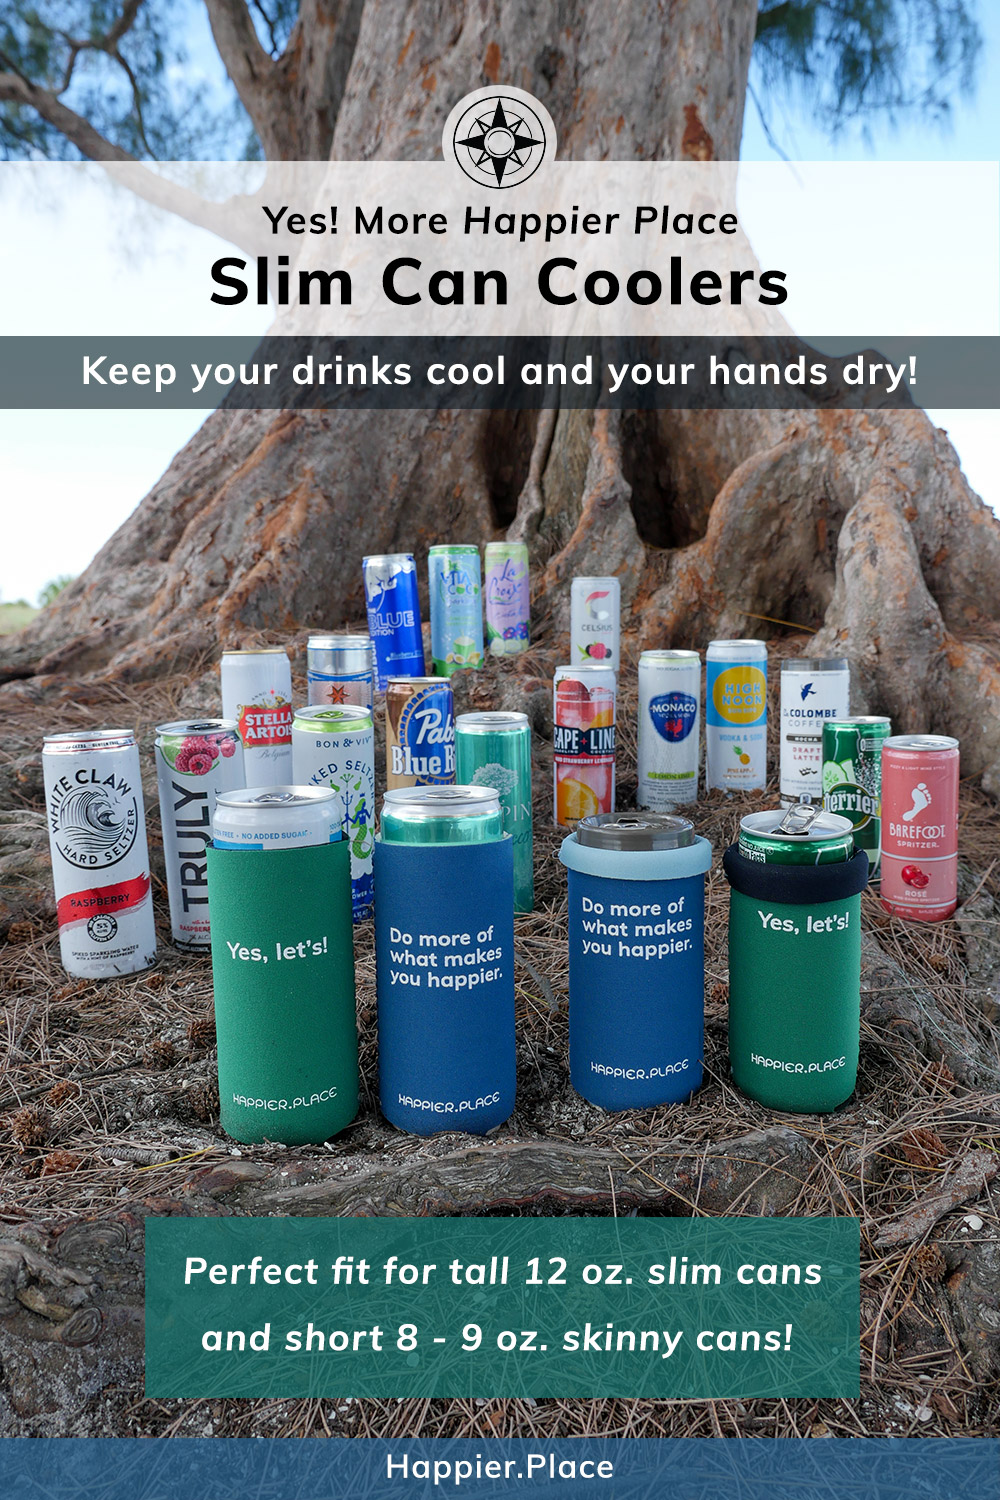 Happier Place Slim can coolers fit 12 oz slim cans for hard seltzers, cocktails, energy drinks, beers and 8 - 9 oz. short cans for wine, coffee